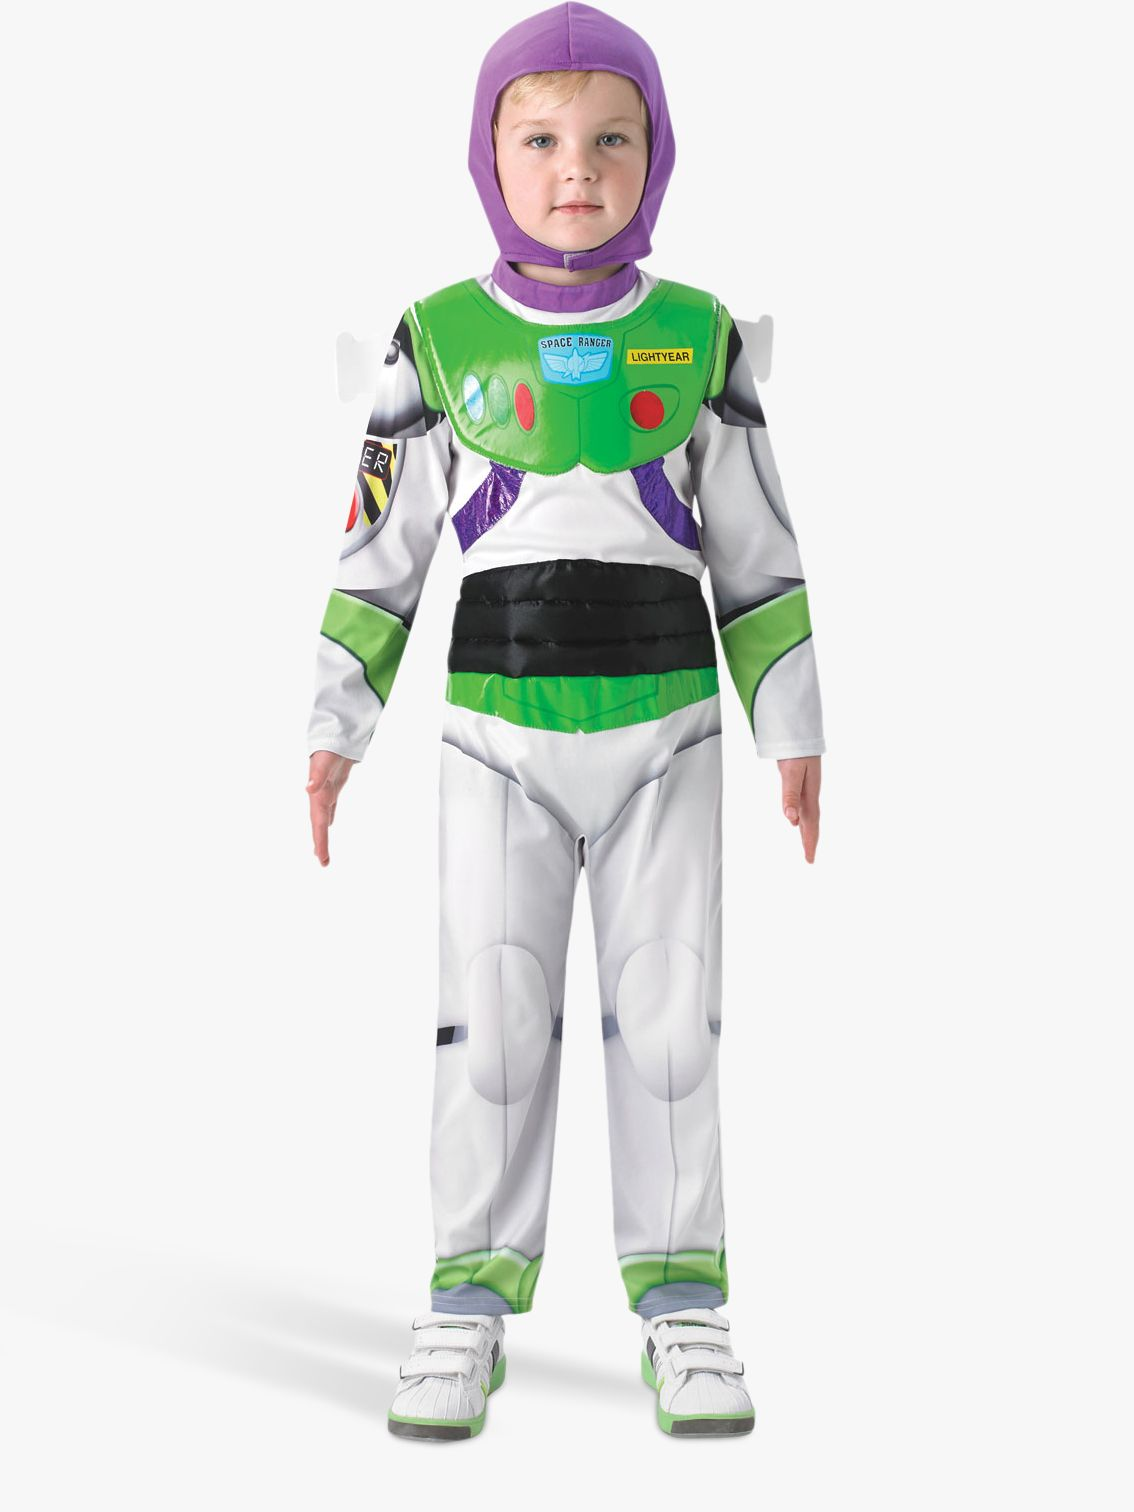 Rubies Toy Story Buzz Lightyear Deluxe Children's Costume, 3-4 years